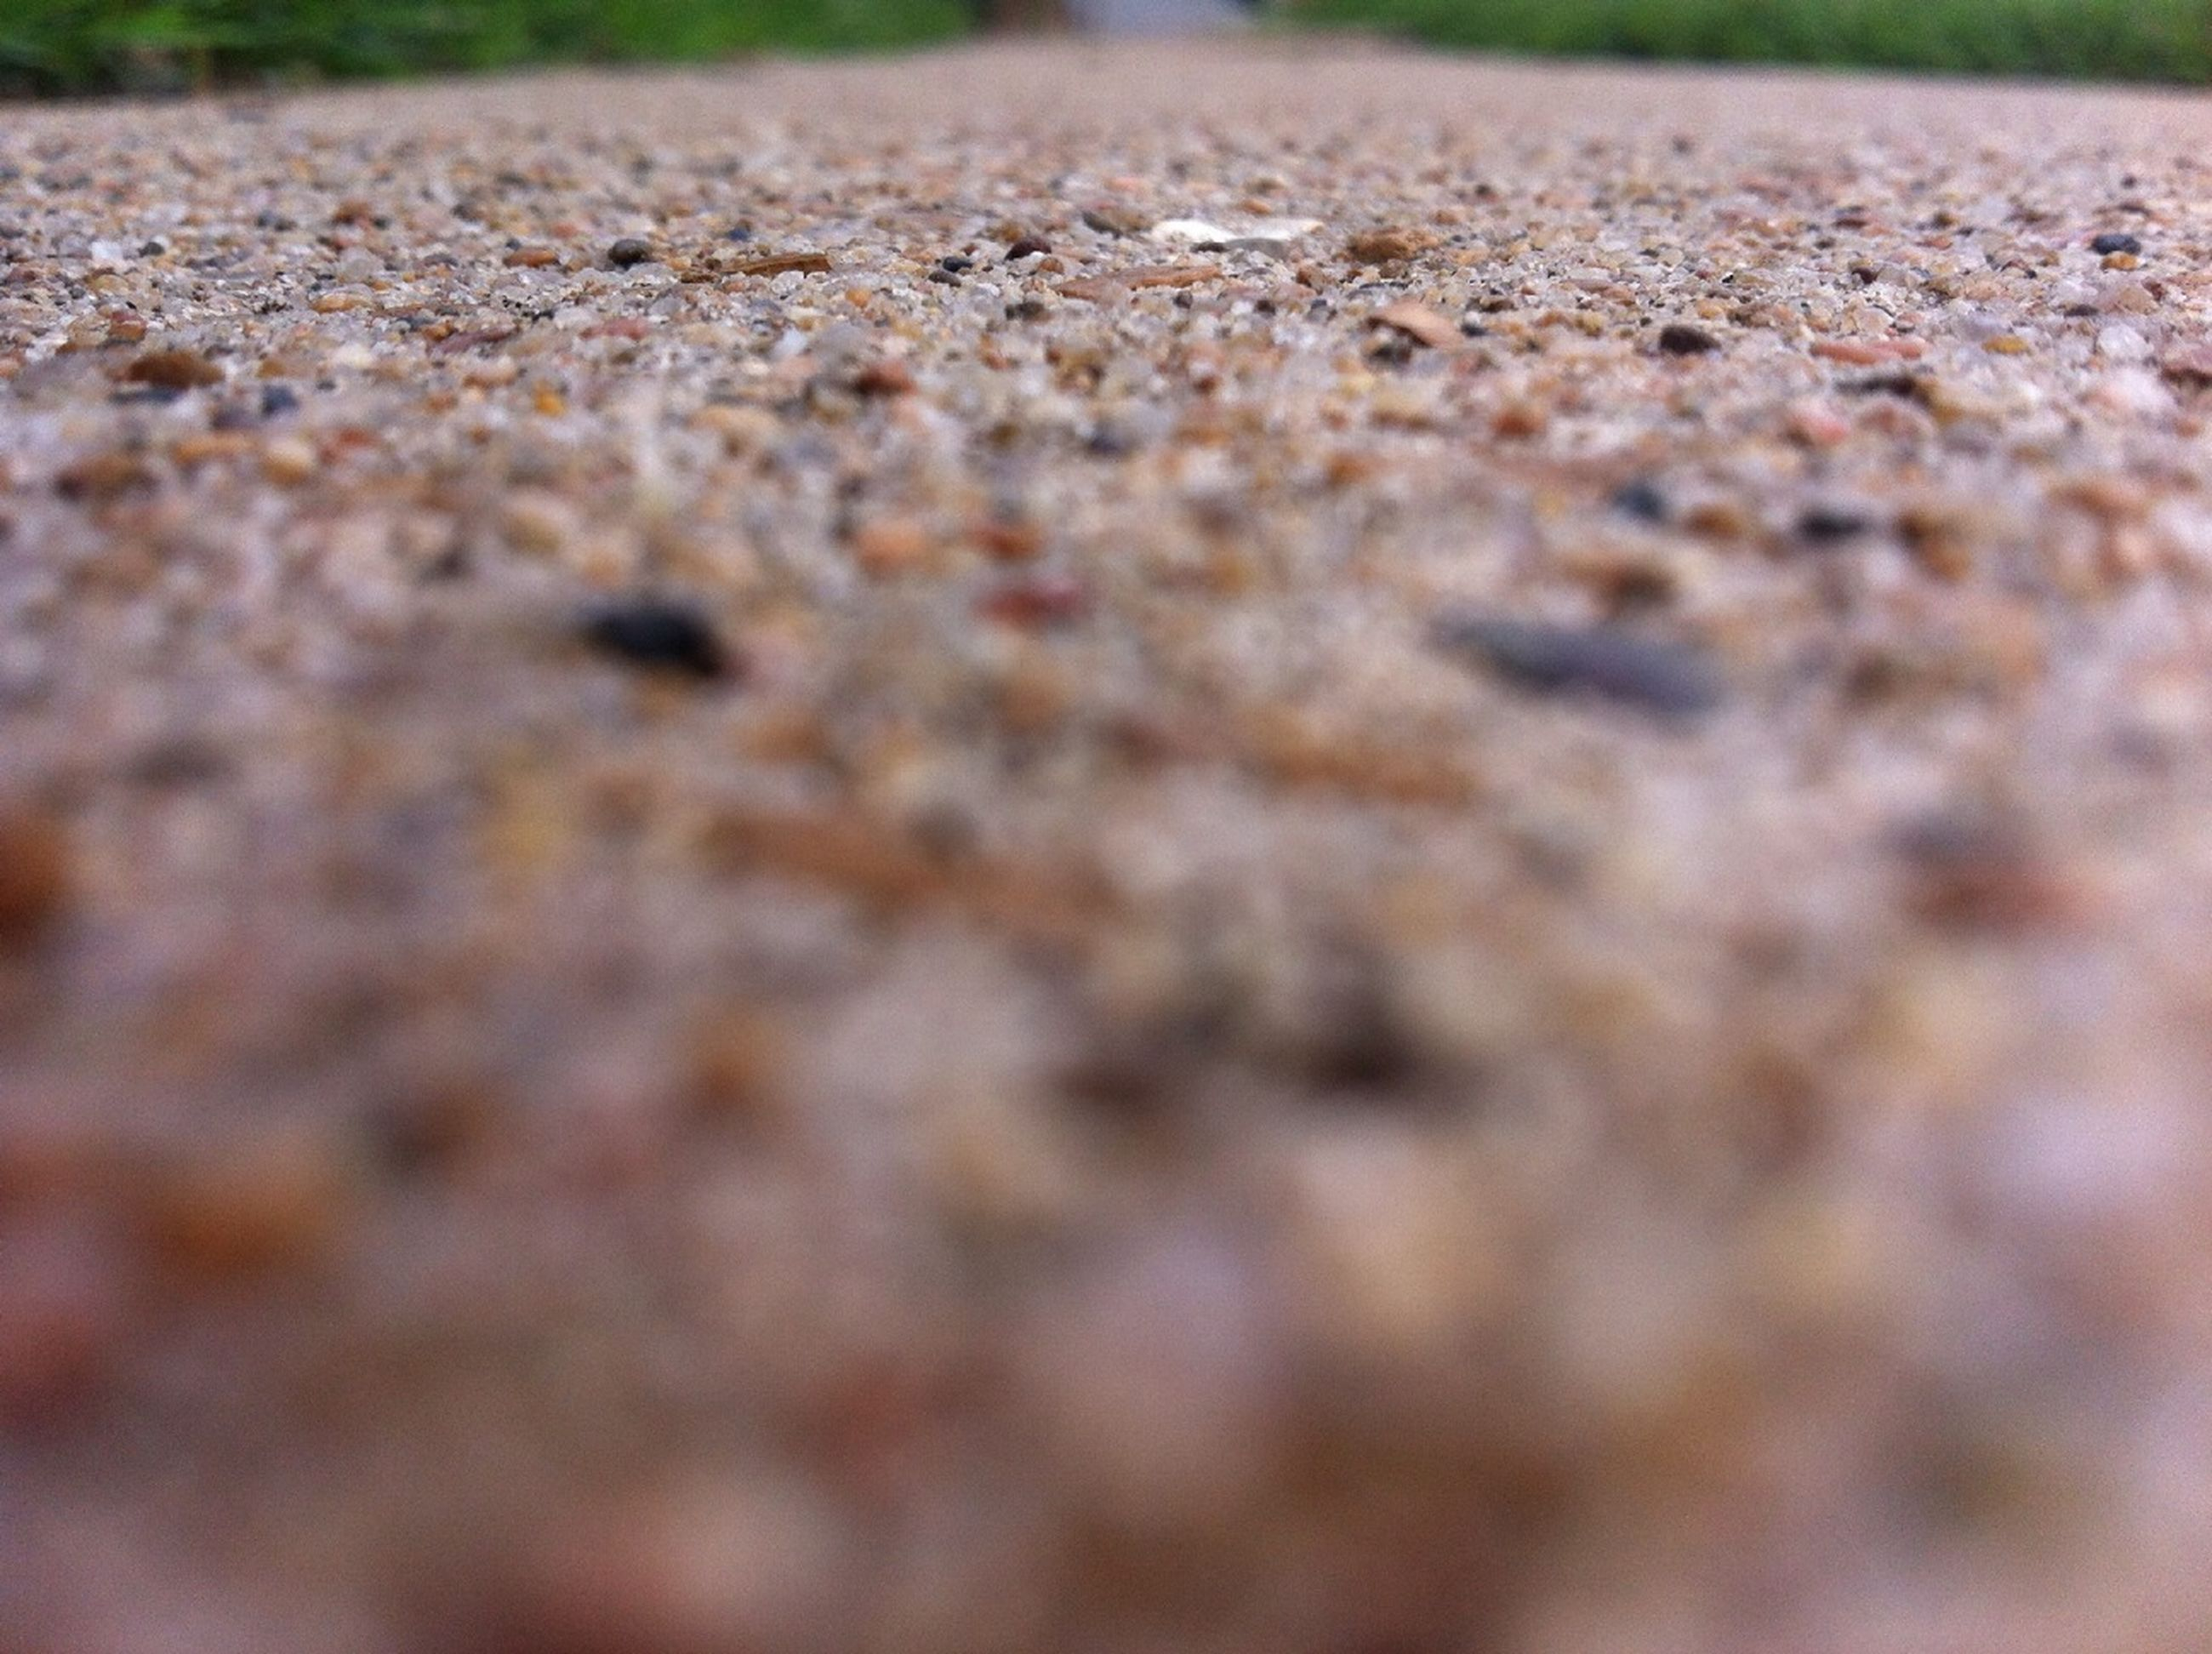 surface level, selective focus, textured, close-up, full frame, backgrounds, day, outdoors, focus on foreground, high angle view, nature, no people, street, asphalt, pattern, road, pebble, stone - object, tranquility, field